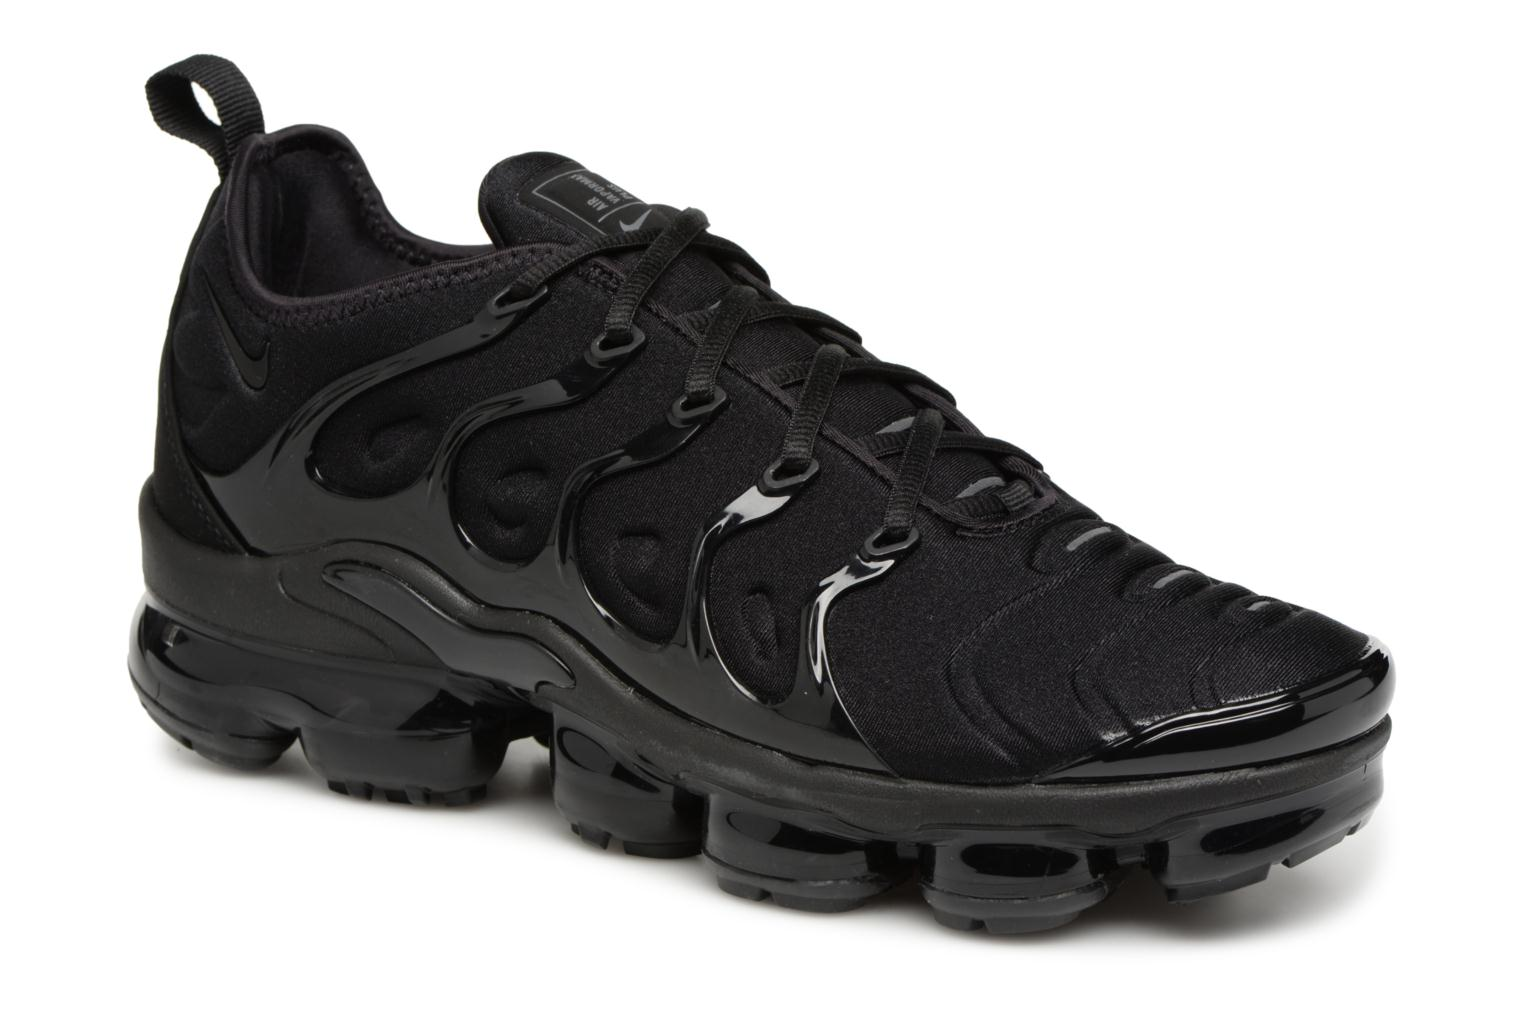 low priced 3f03a a75a1 Baskets Nike Air Vapormax Plus Noir vue détail paire